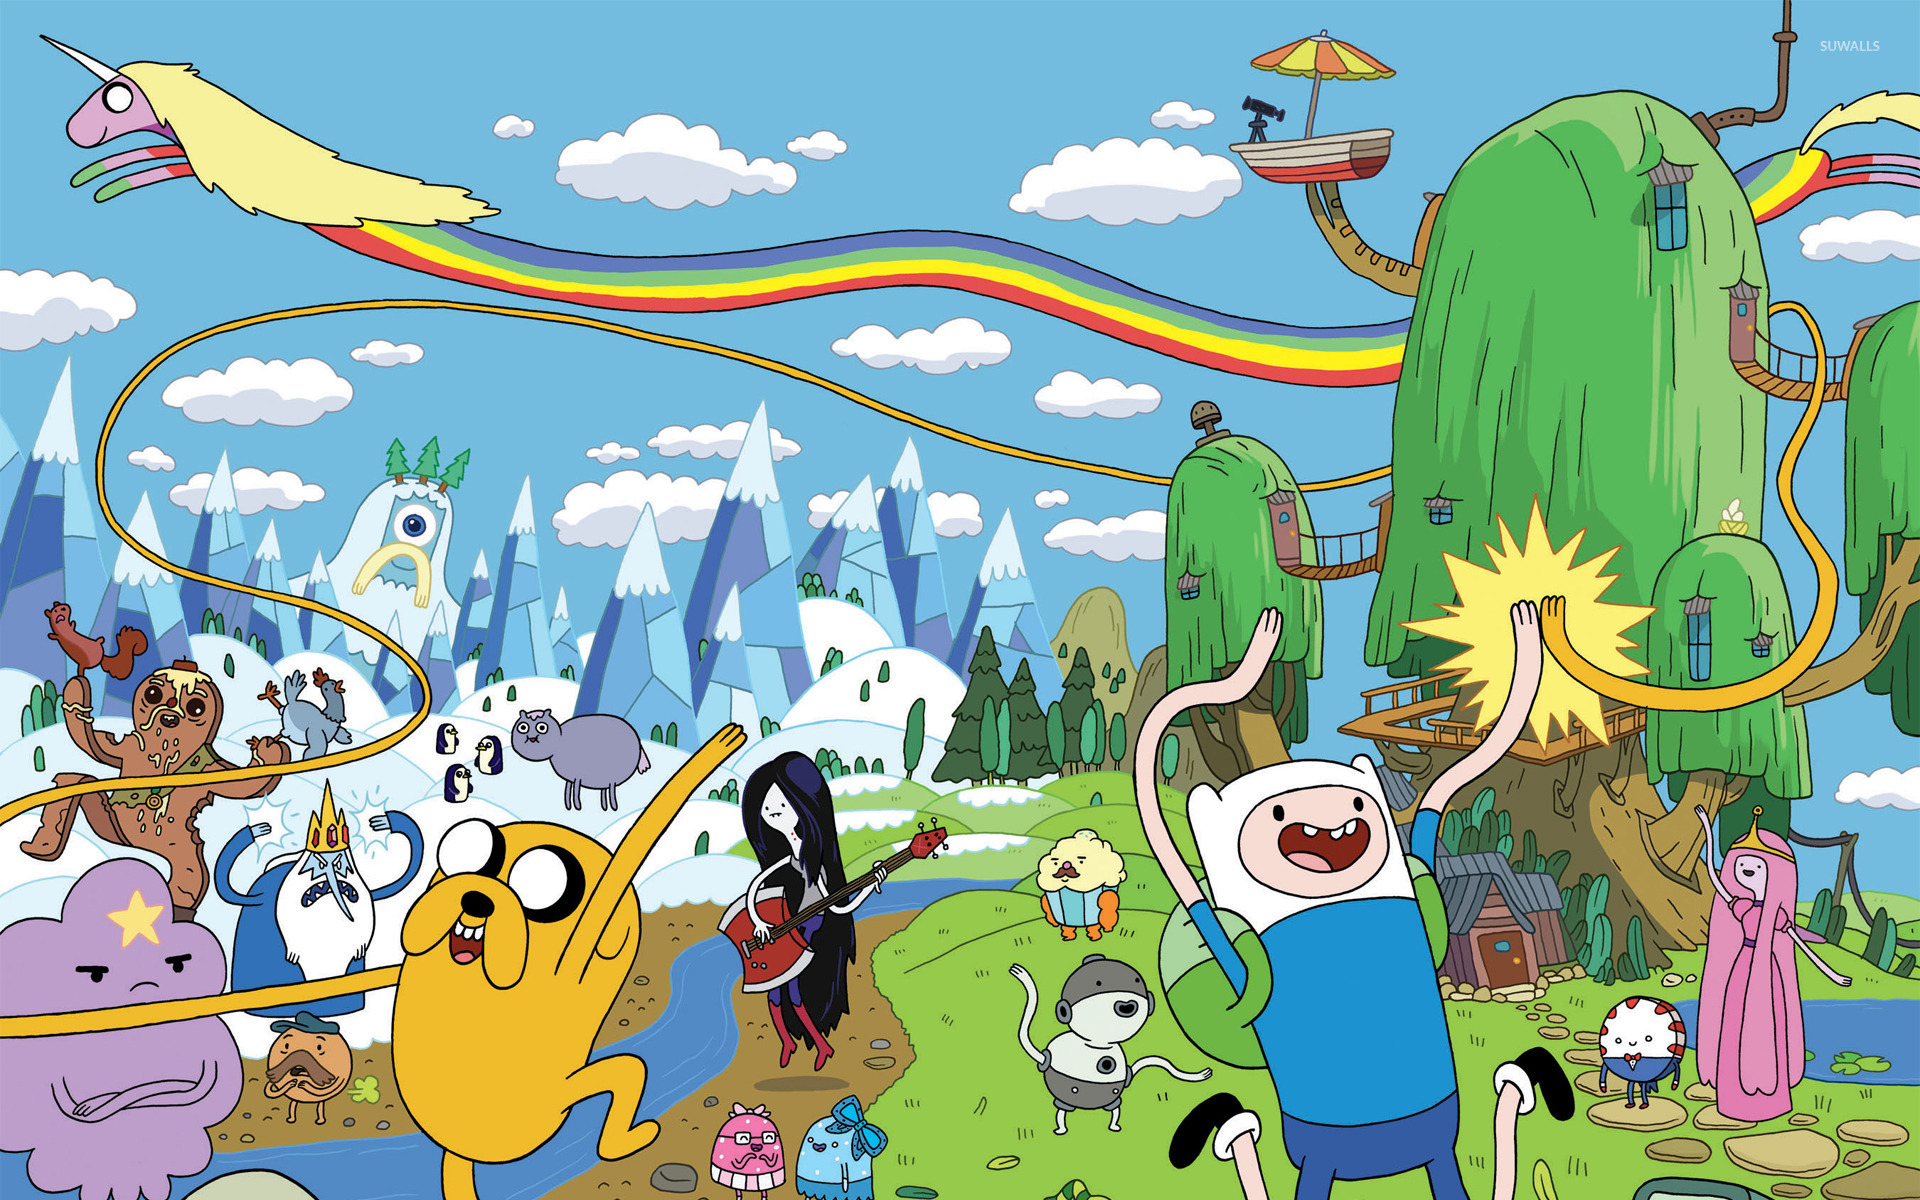 Adventure time wallpaper cartoon wallpapers 15015 adventure time wallpaper thecheapjerseys Choice Image